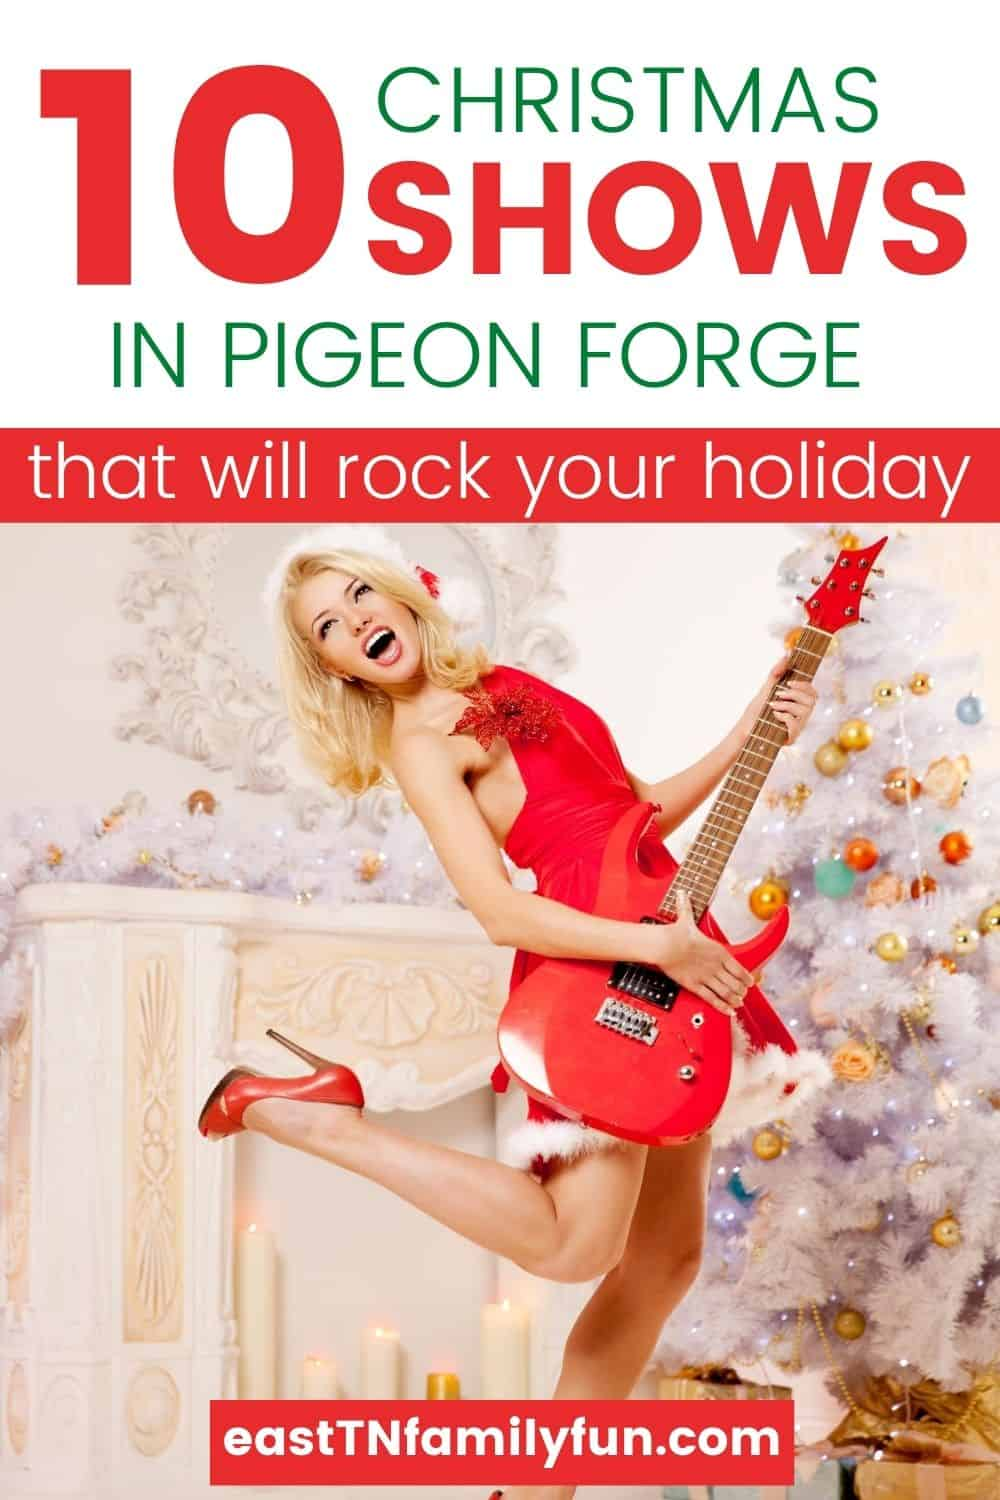 Best Christmas Shows in Pigeon Forge